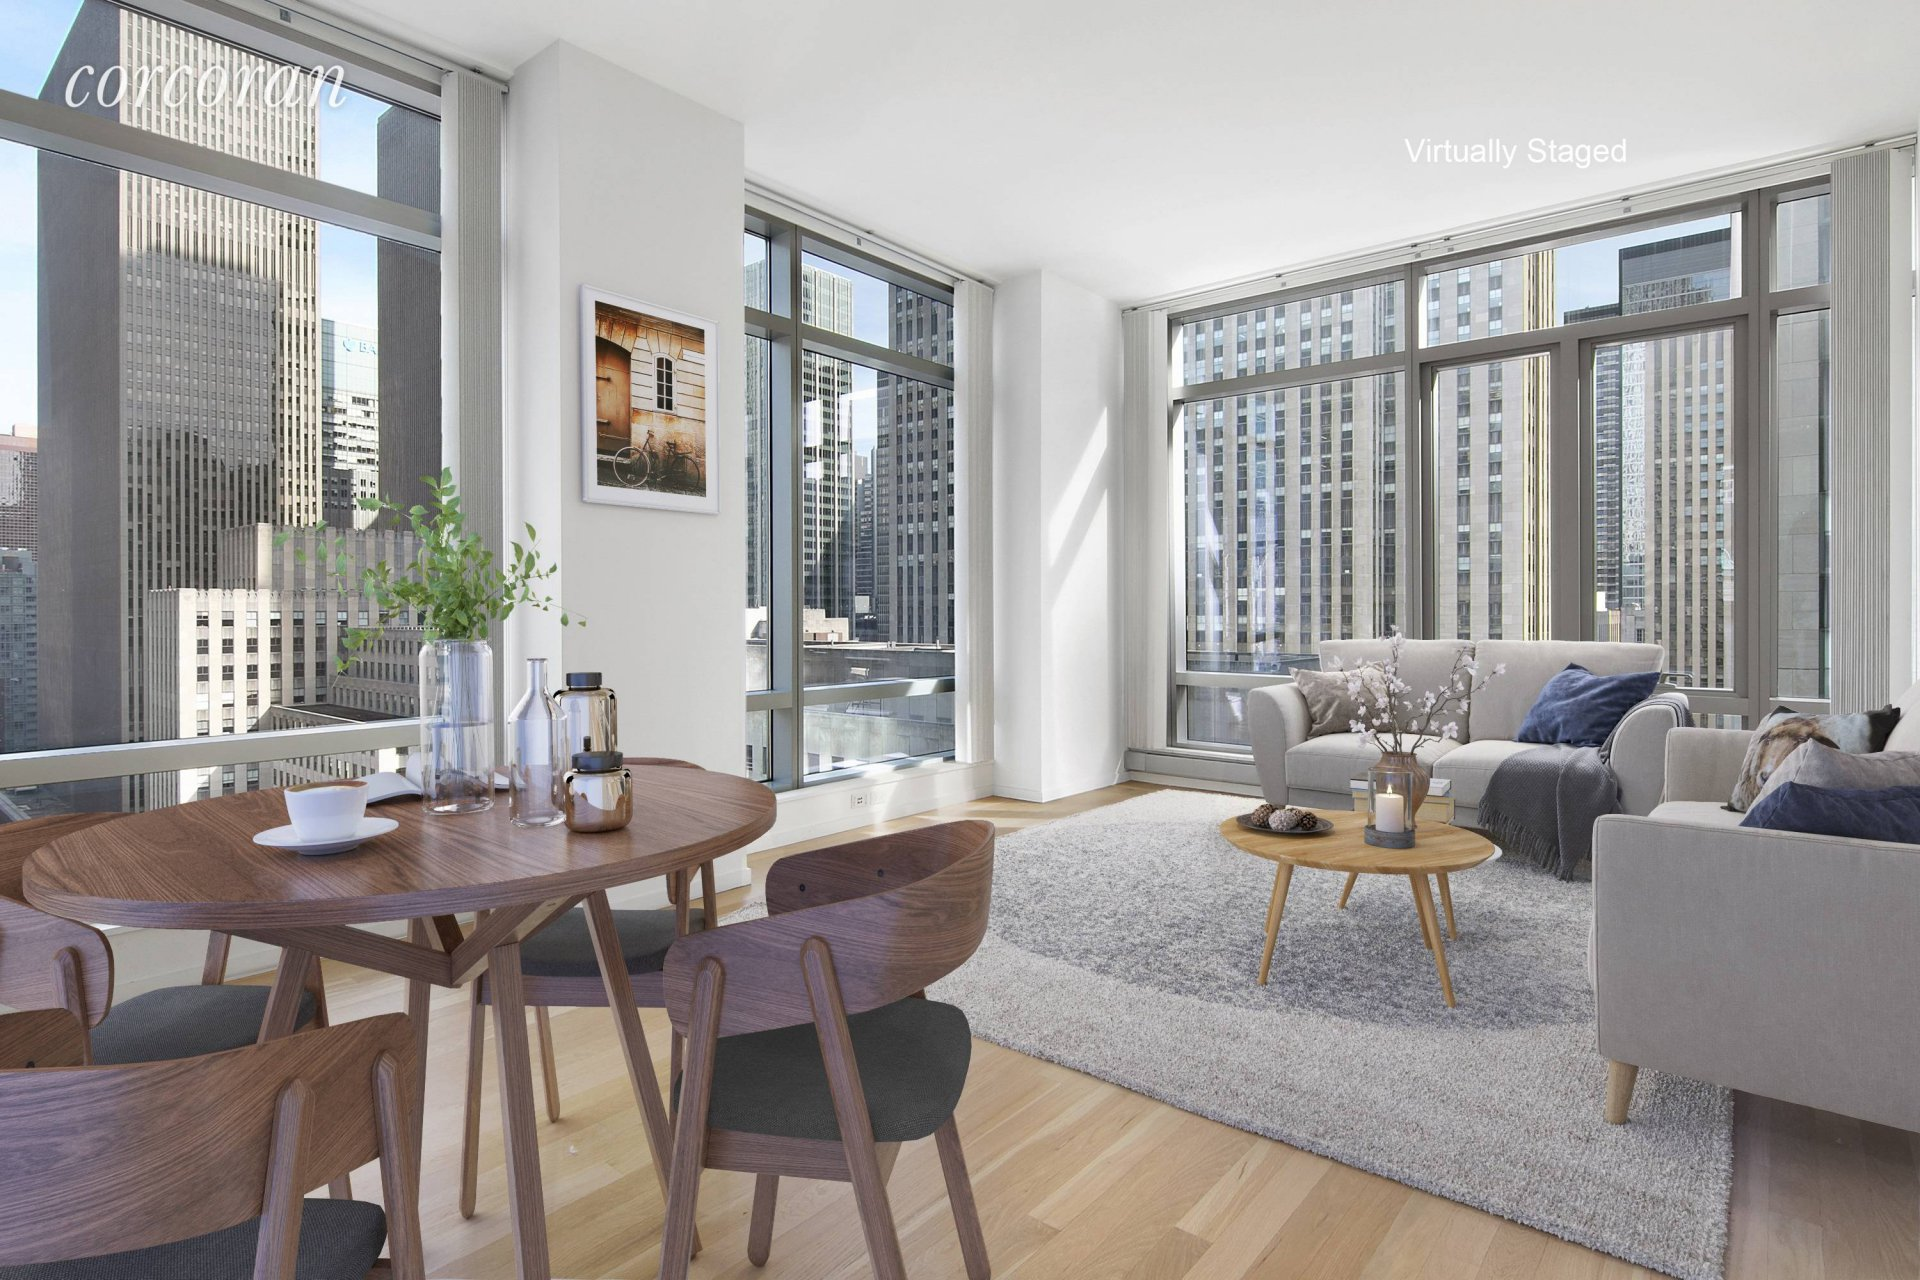 Annonce Vente Appartement New York (10036) ref:5775237